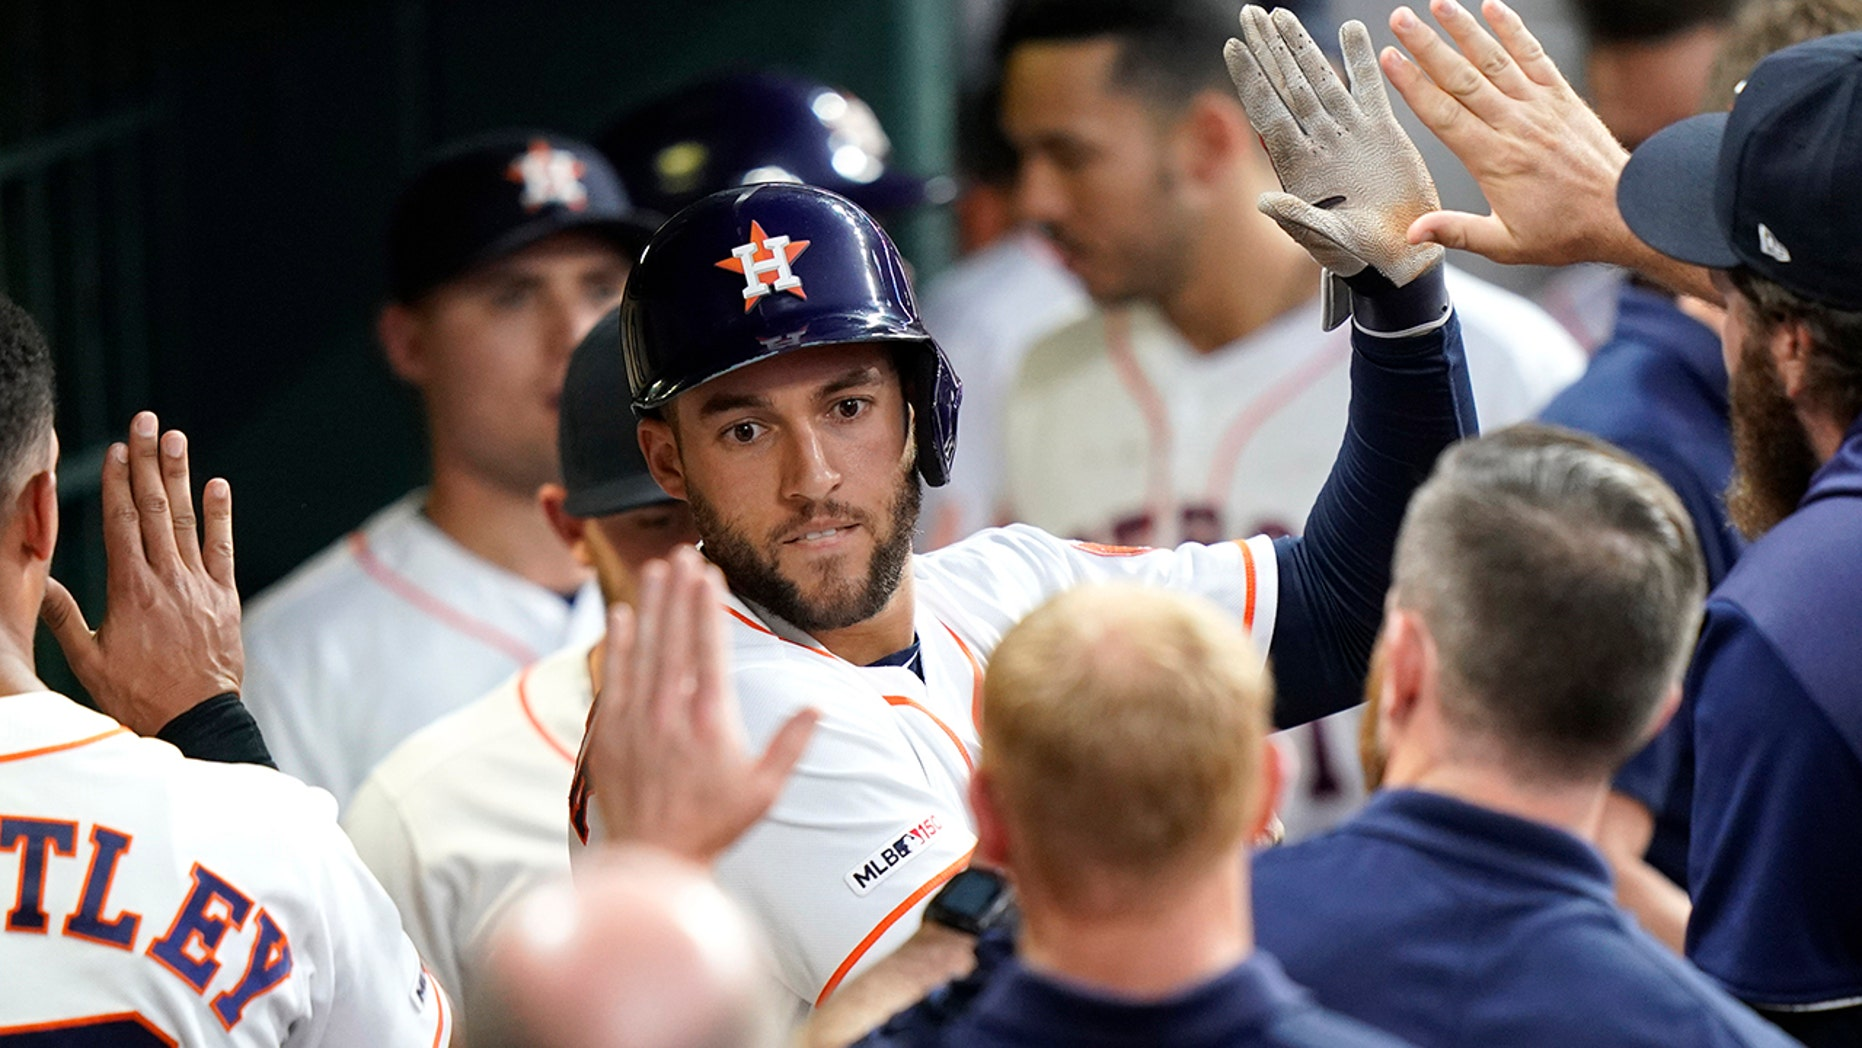 Houston Astros' George Springer is congratulated in the dugout after hitting a home run against the Cleveland Indians during the third inning of a baseball game Thursday, April 25, 2019, in Houston. (AP Photo/David J. Phillip)